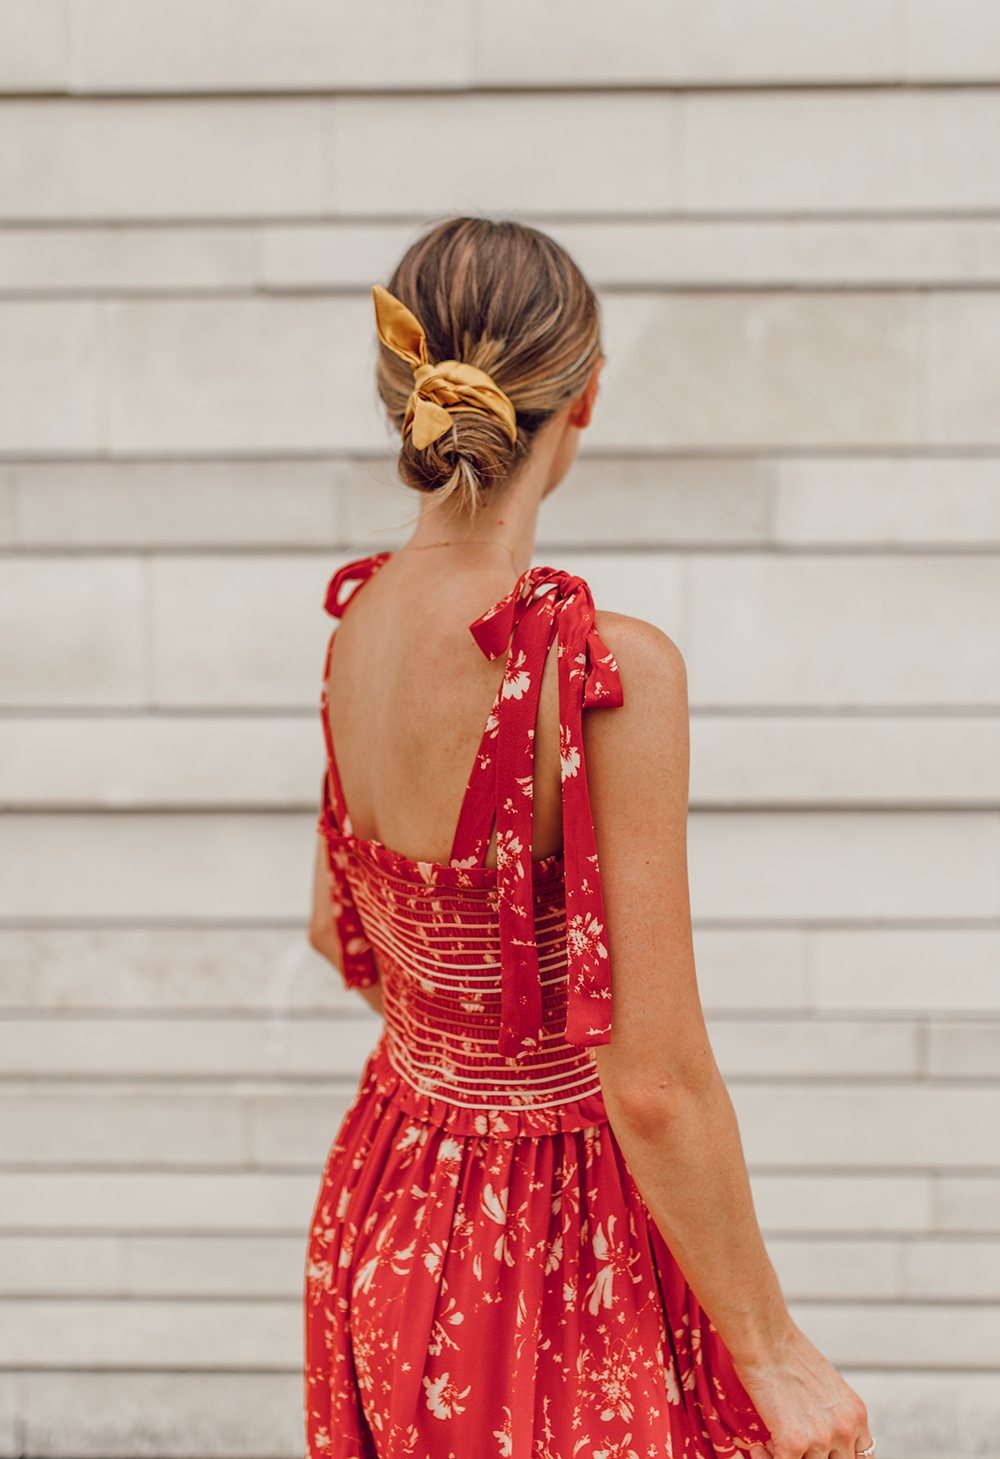 livvyland-blog-olivia-watson-austin-texas-fashion-style-blogger-free-people-red-maxi-dress-jumper-jumpsuit-summer-bbq-outfit-idea-1